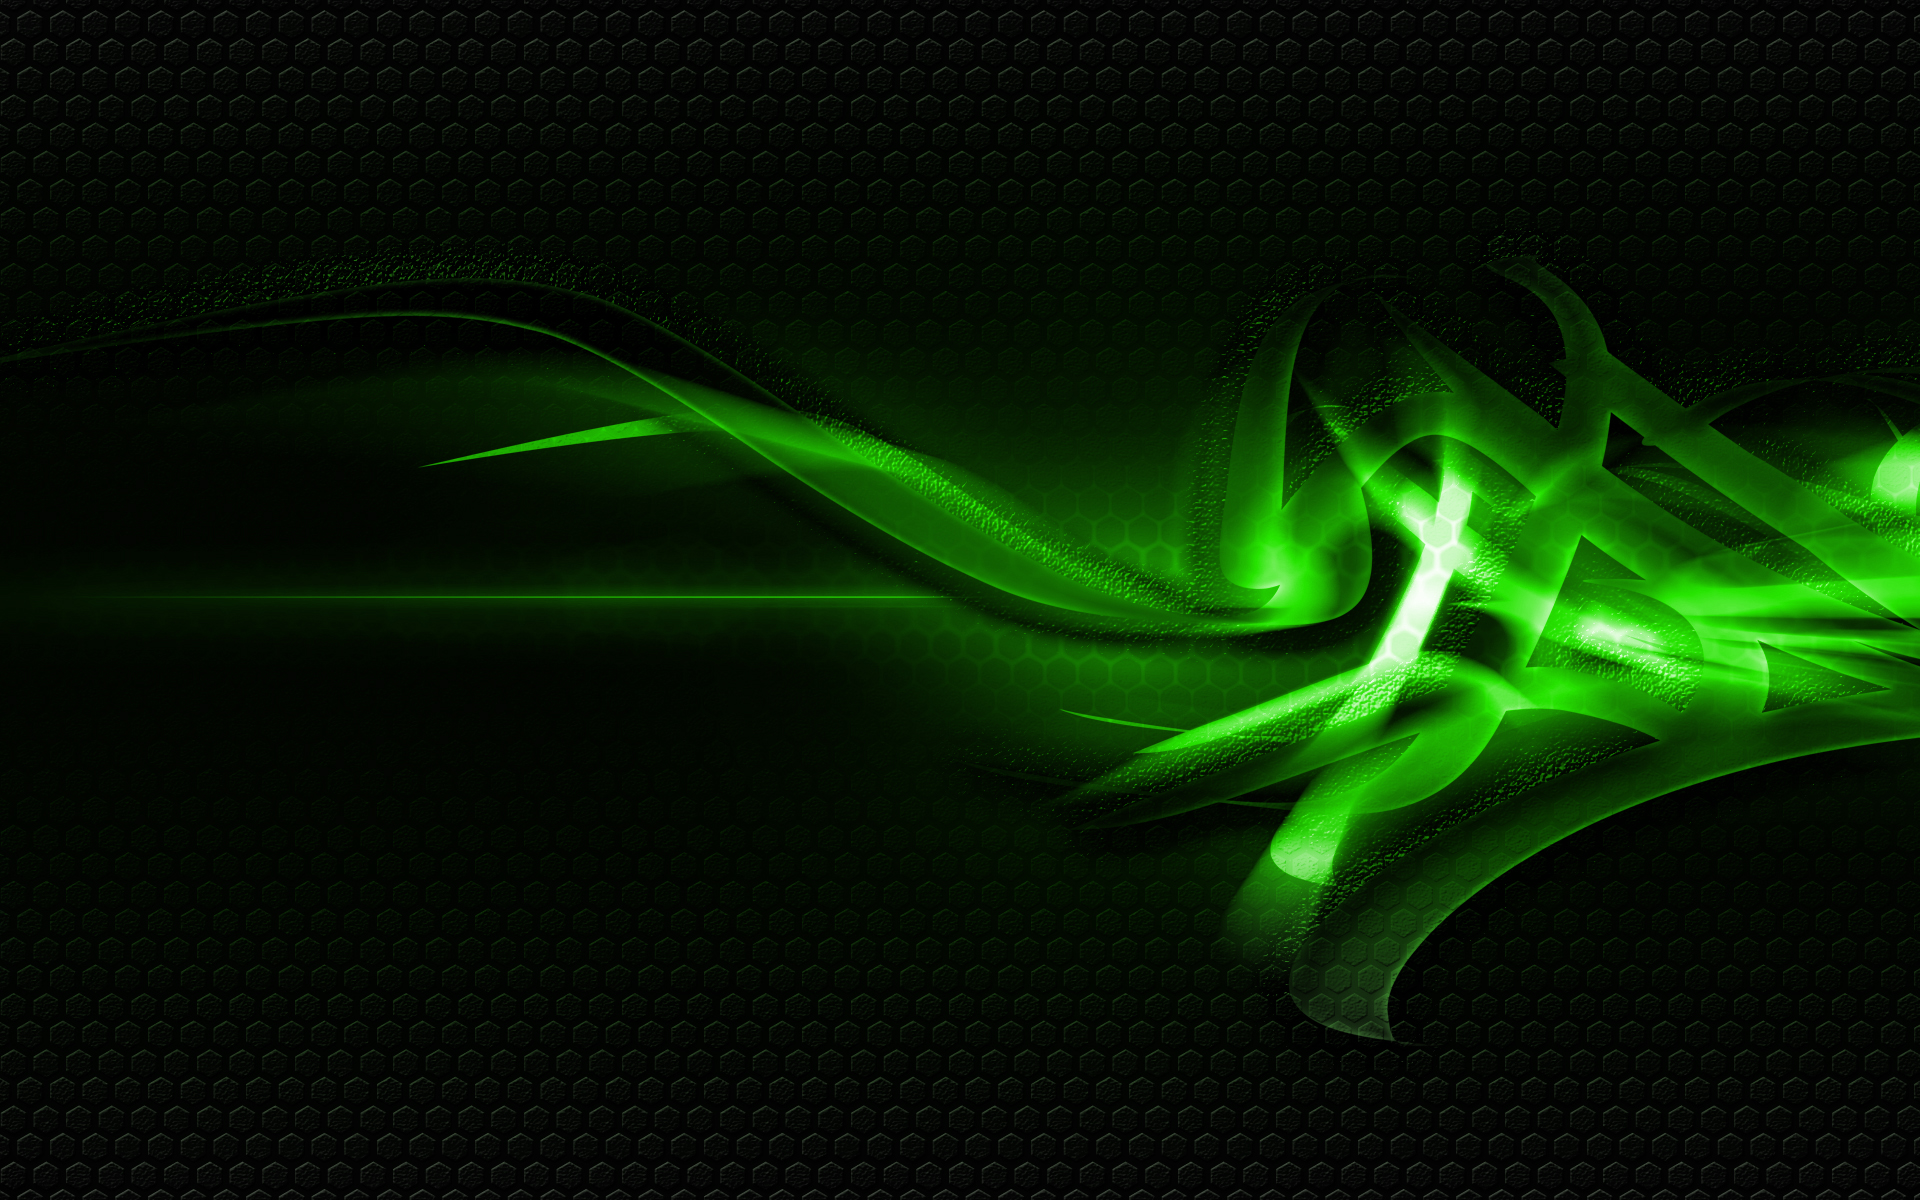 Cool Green Abstract Widescreen Wallpaper Hd Resolution 1920x1200px